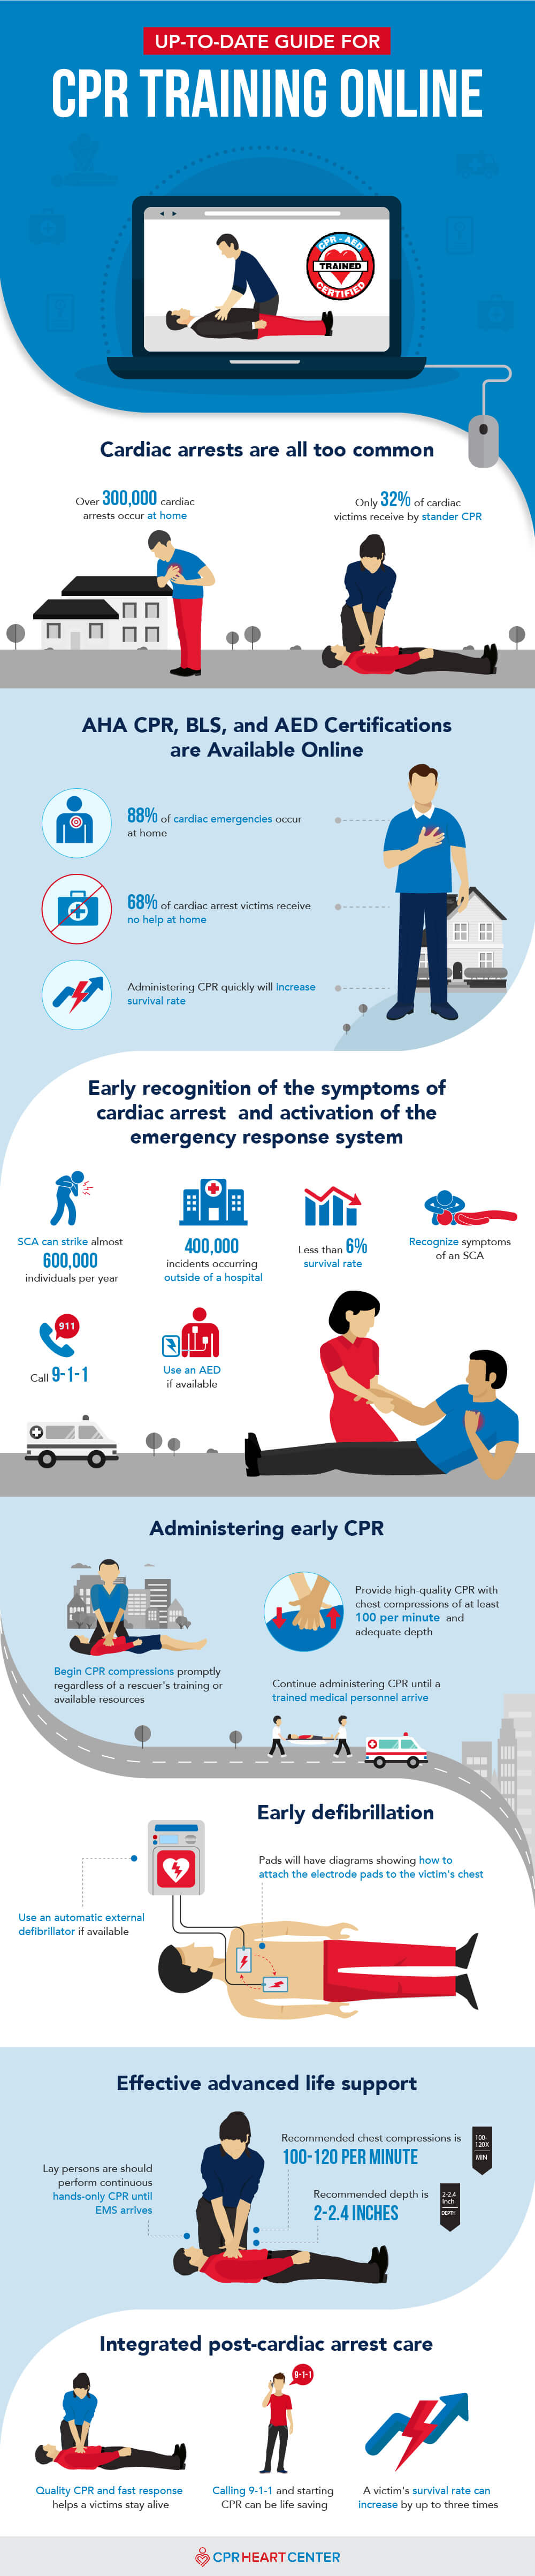 Online Cpr Training Guide For 2018 Cpr Heart Center